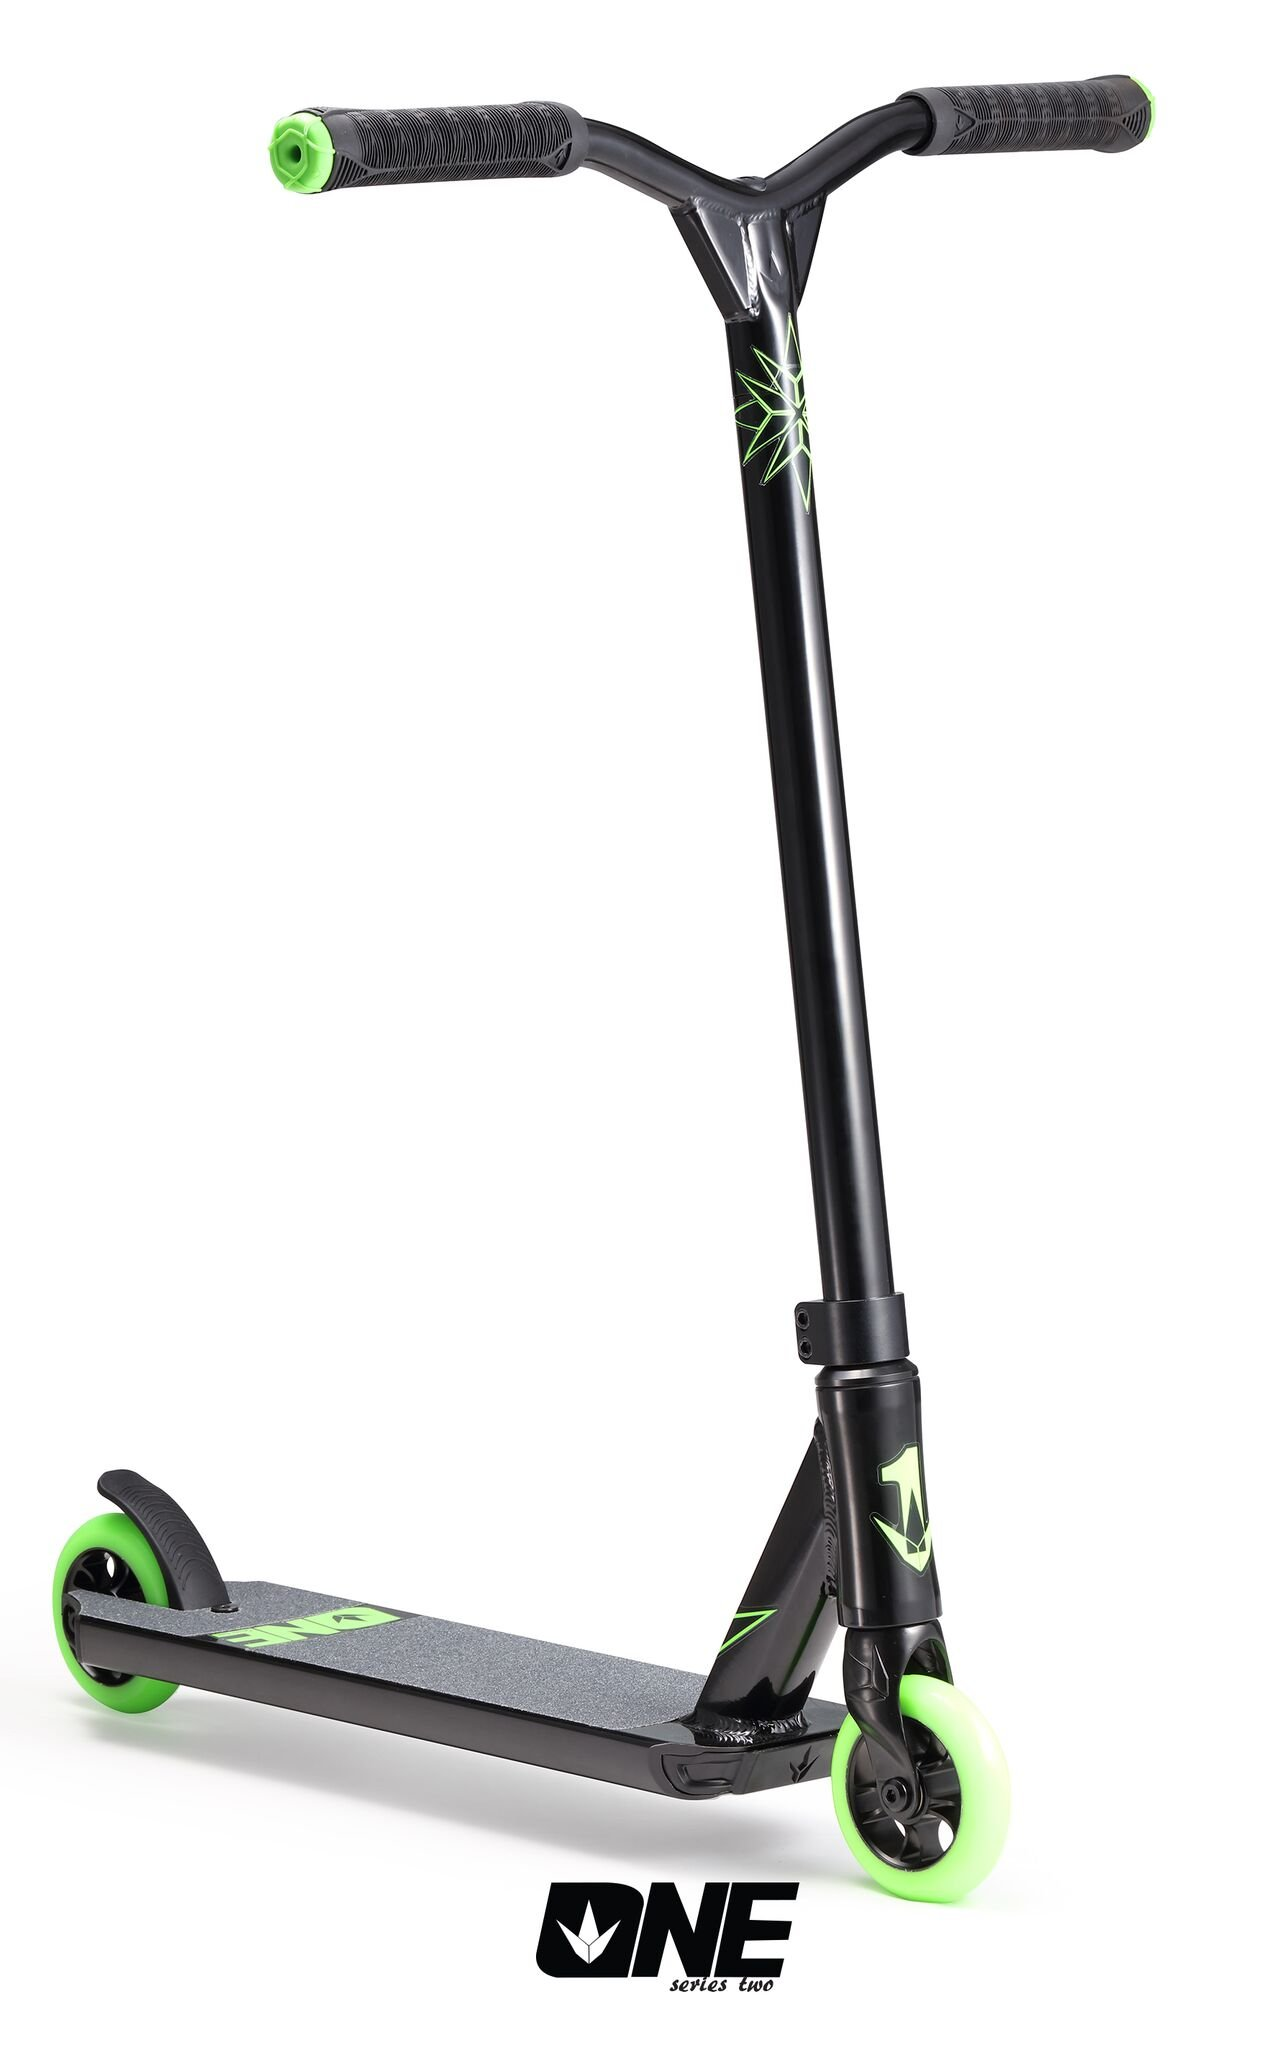 Envy One Series 2 Scooter (Green) by Envy Scooters